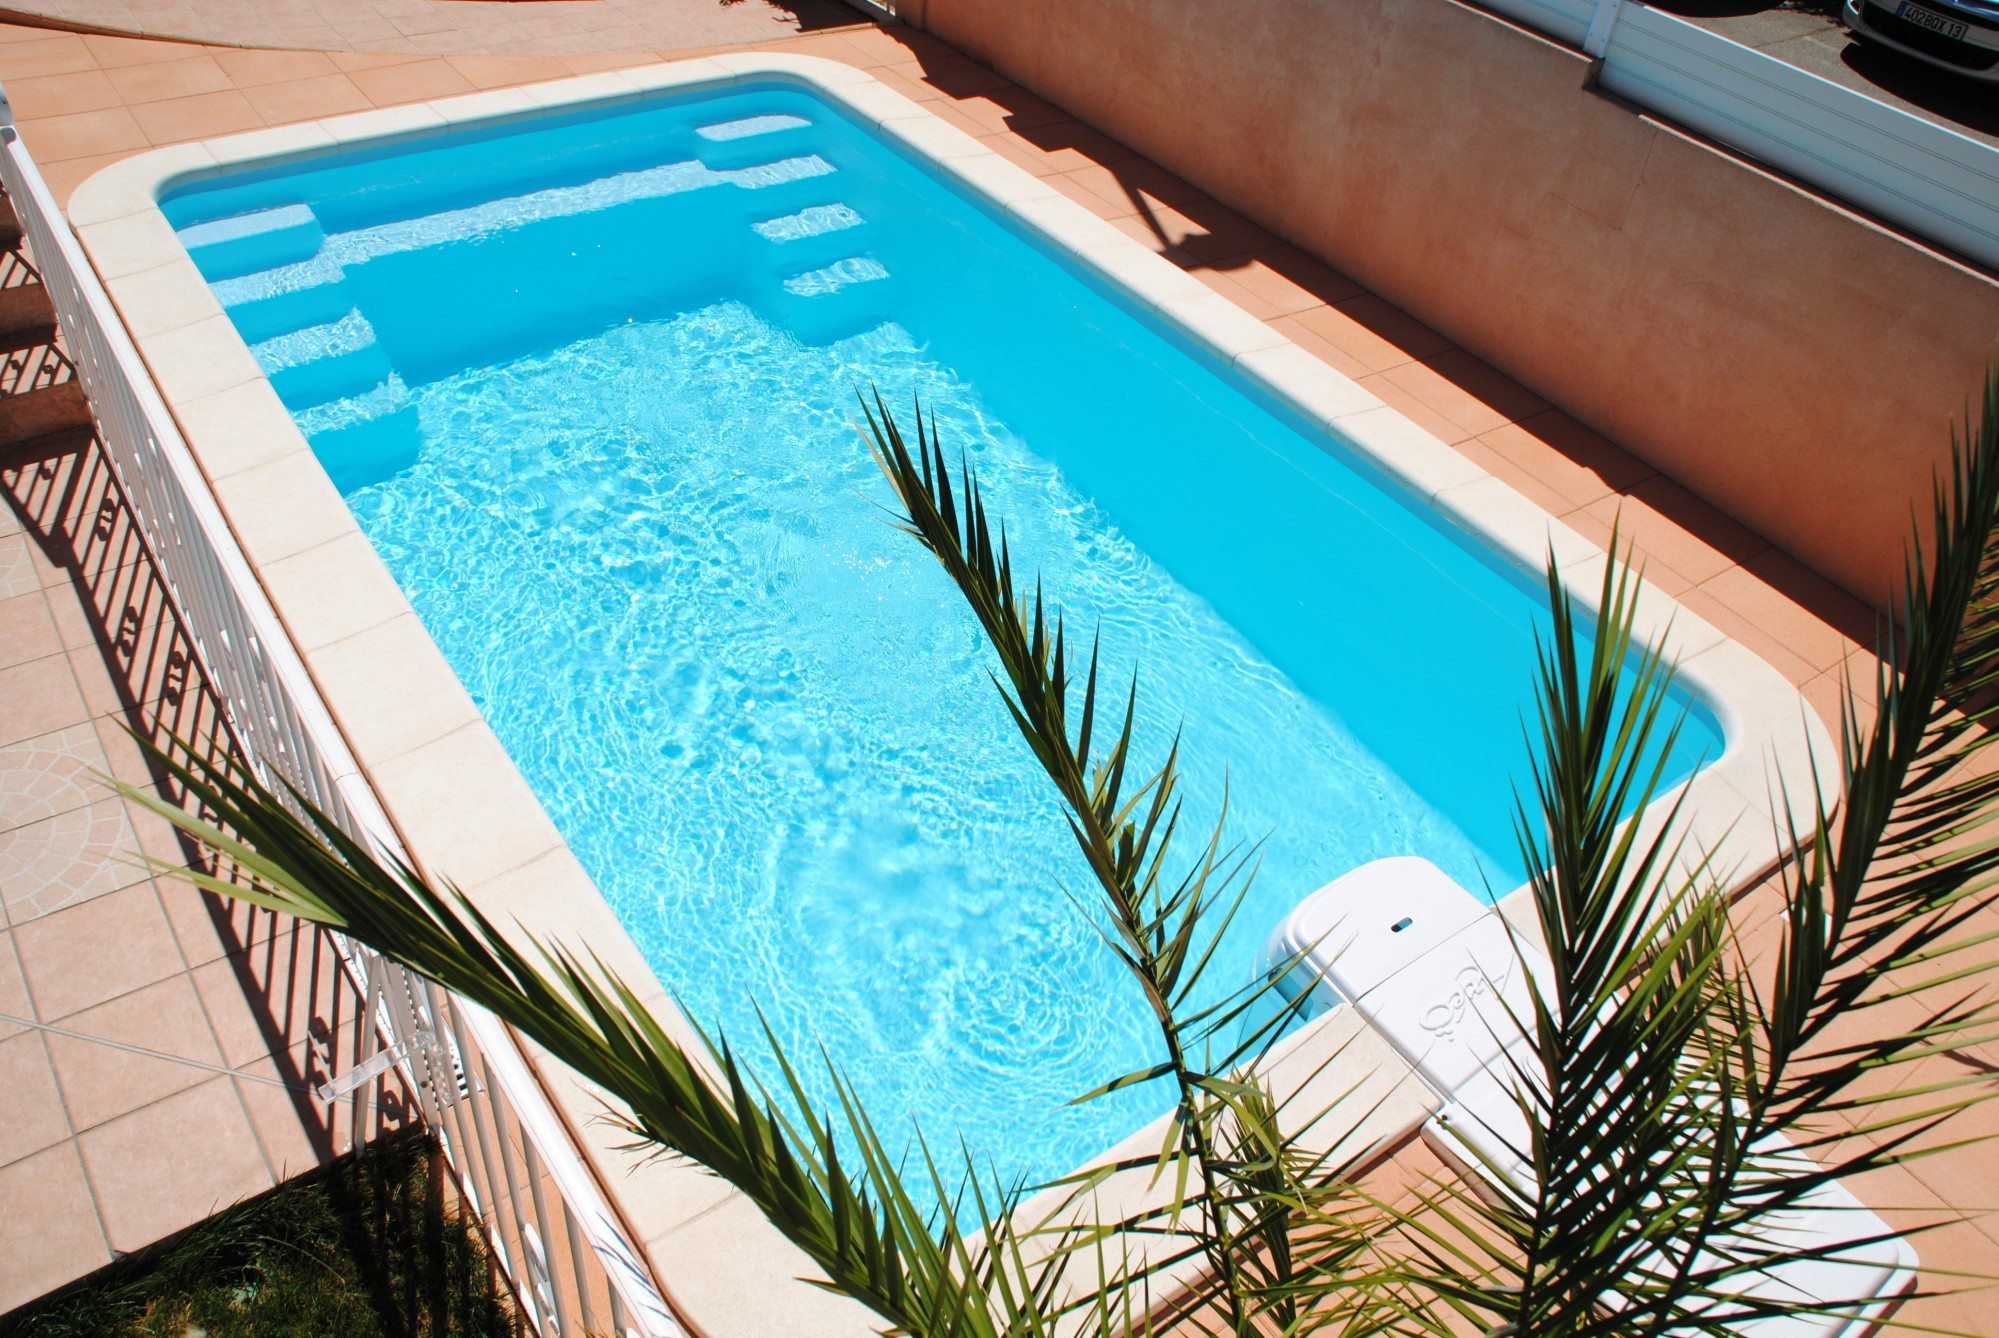 Piscine enterr e coque 6x3 pr te plonger prix for Prix piscine 6x3